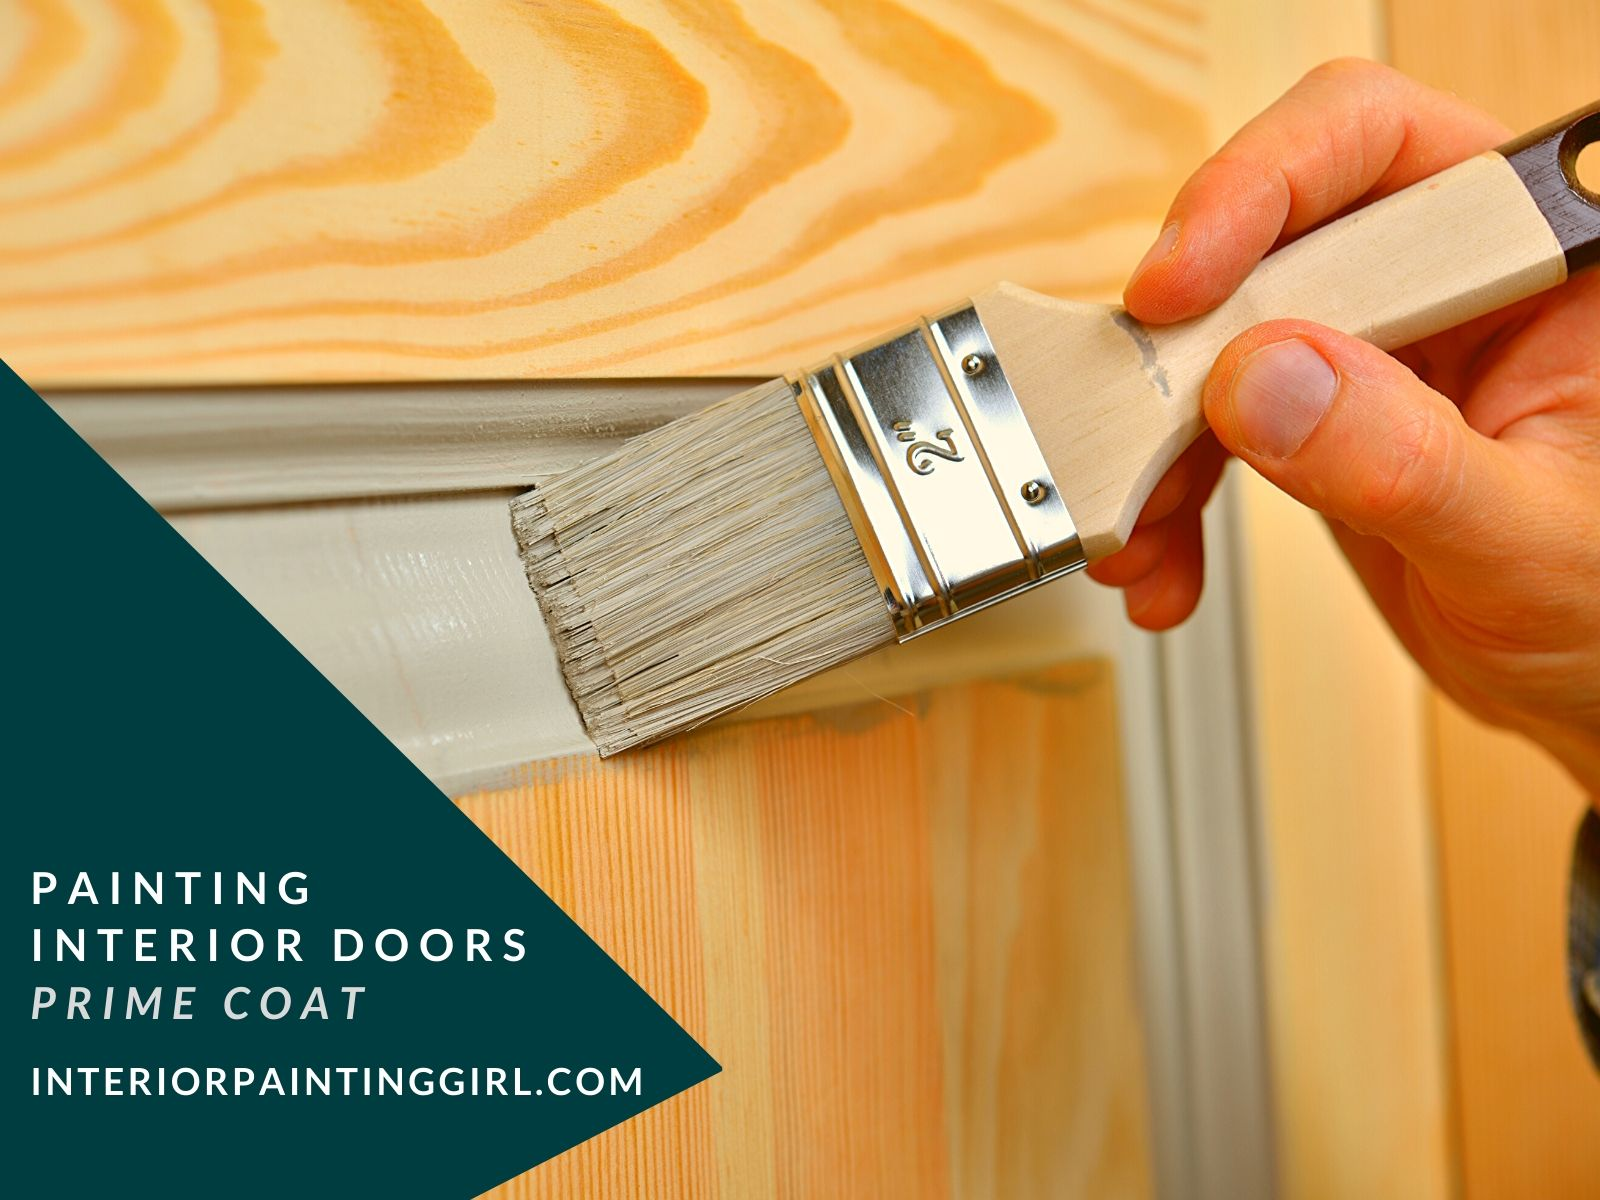 Painting Interior Doors Step-by-Step - THAT Interior Painting Girl!